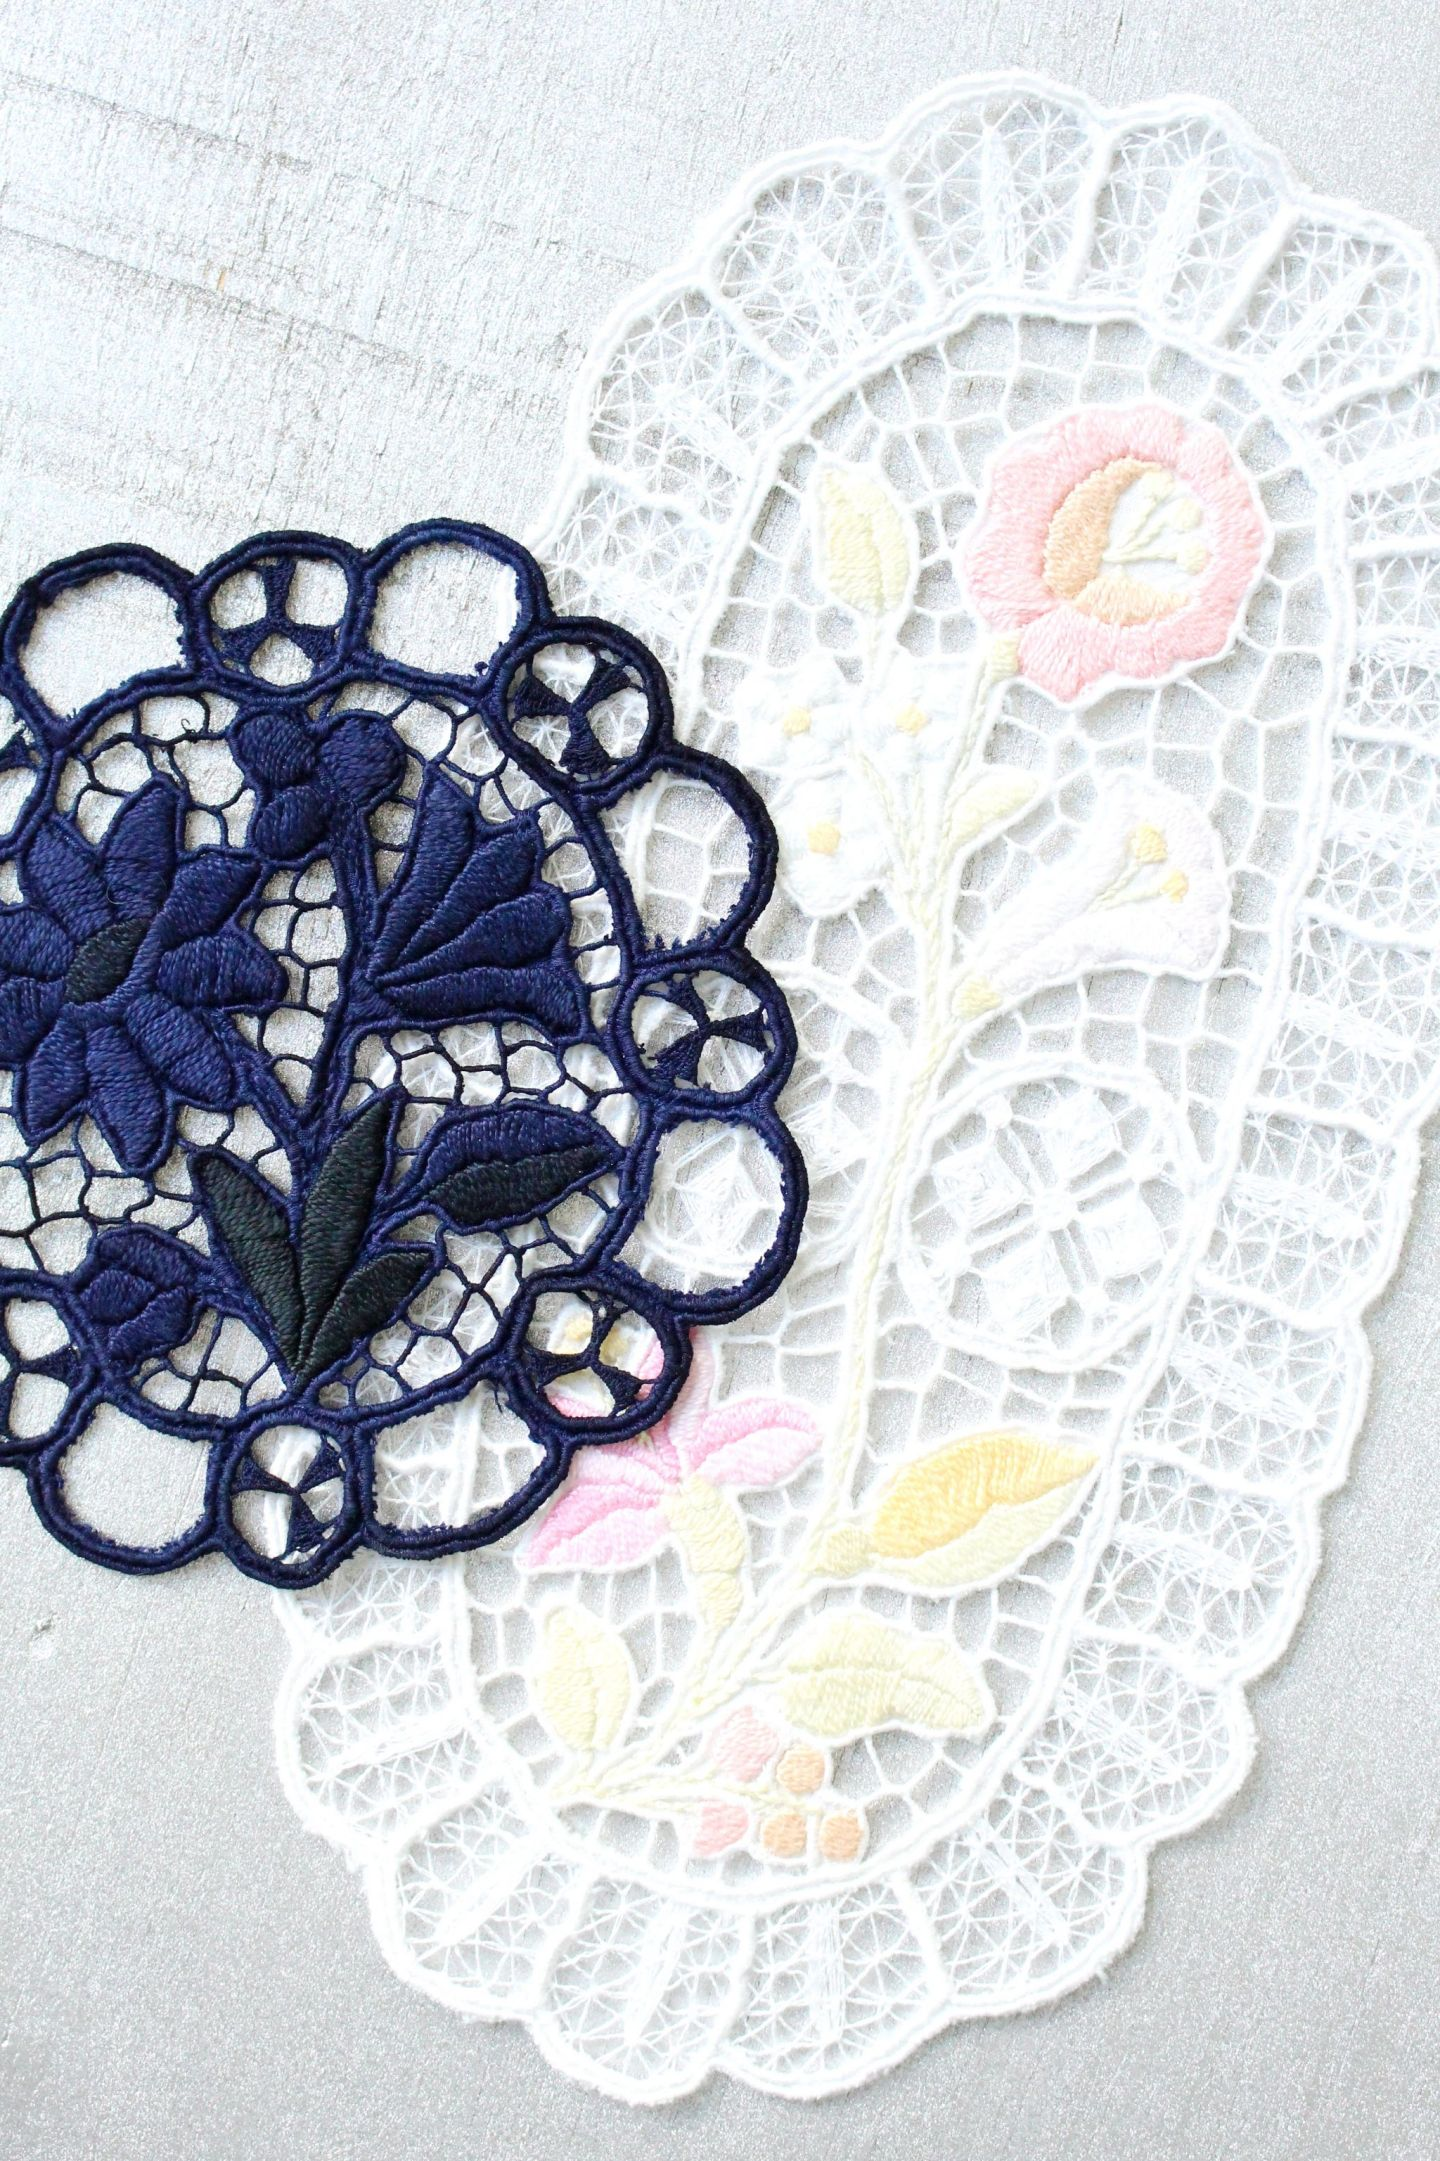 Bleached and Overdyed Embroidery